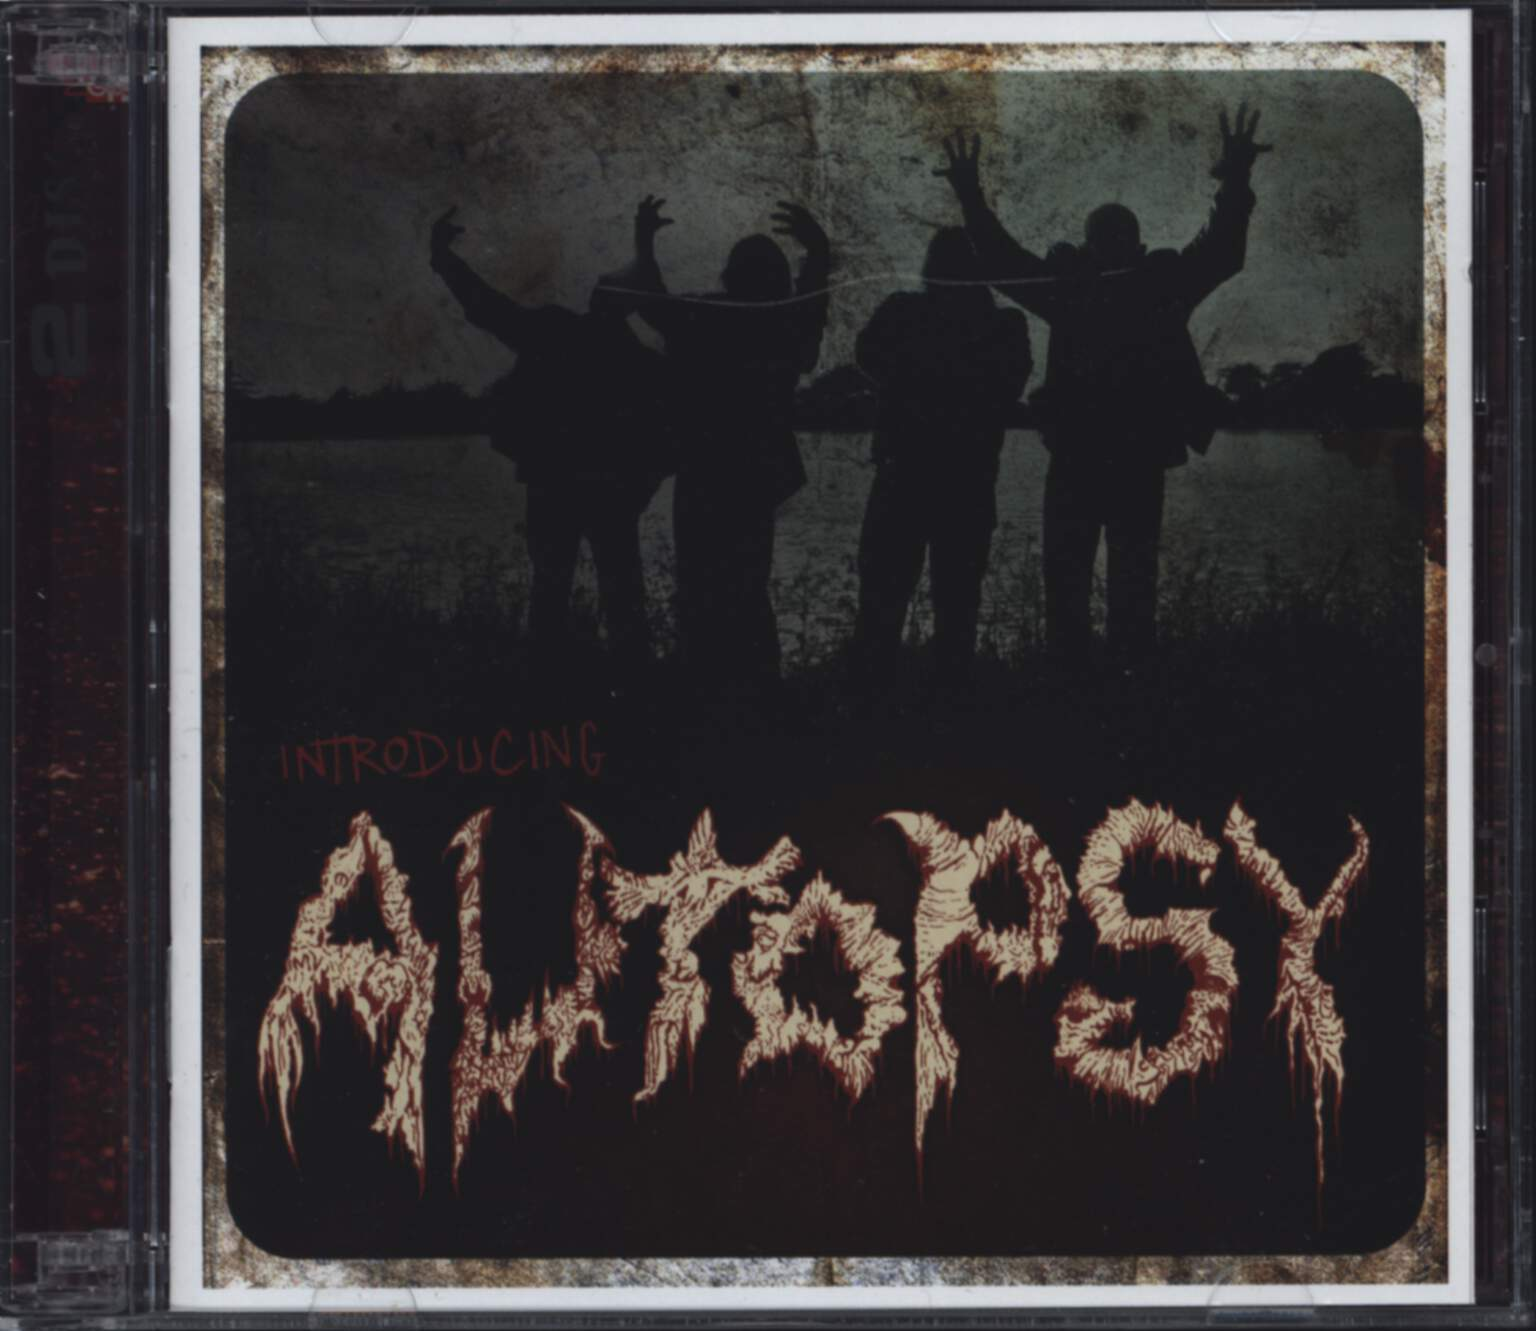 Autopsy: Introducing Autopsy, CD